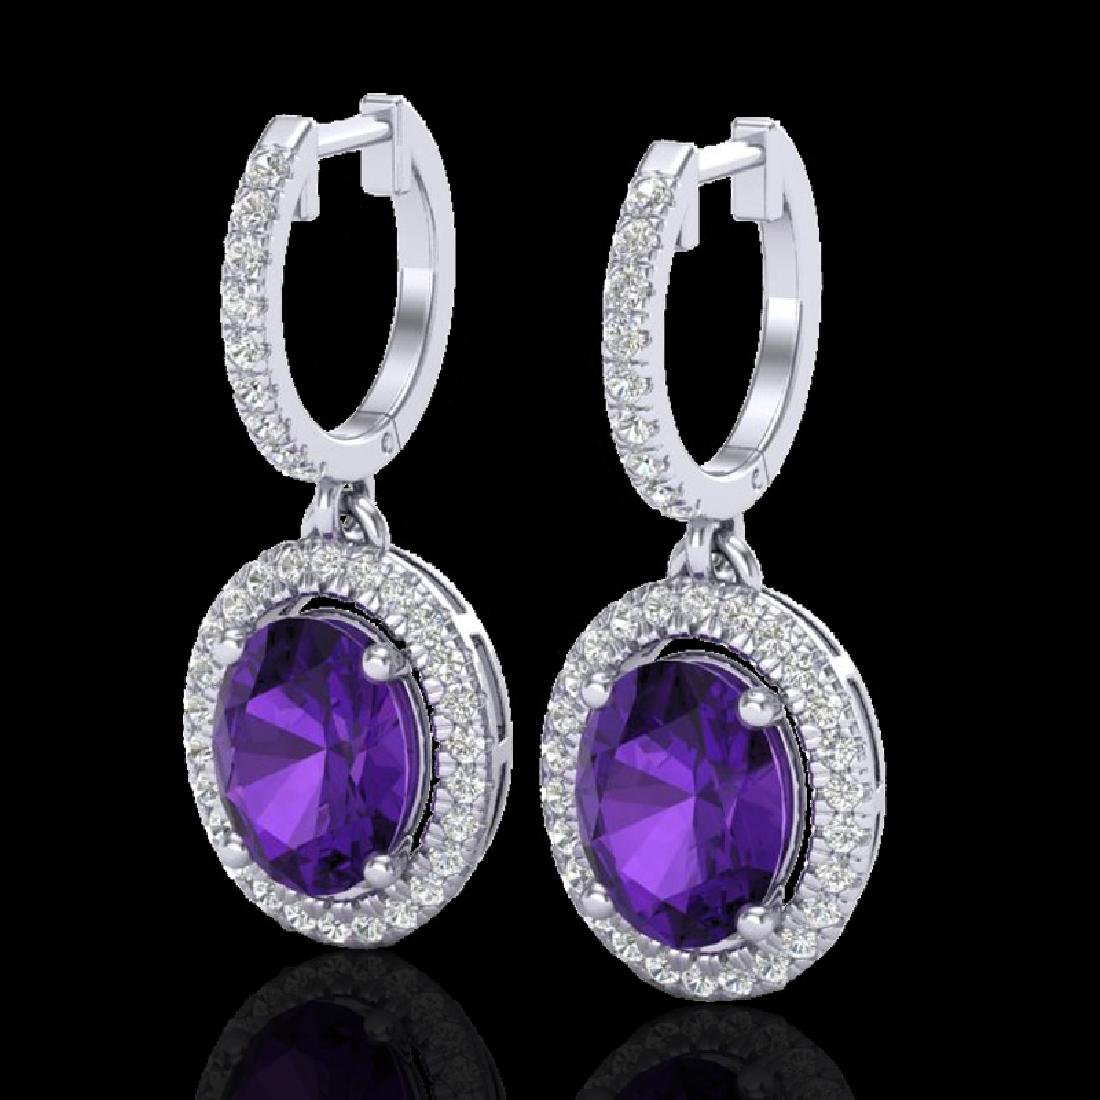 3.50 CTW Amethyst & Micro Pave VS/SI Diamond Earrings